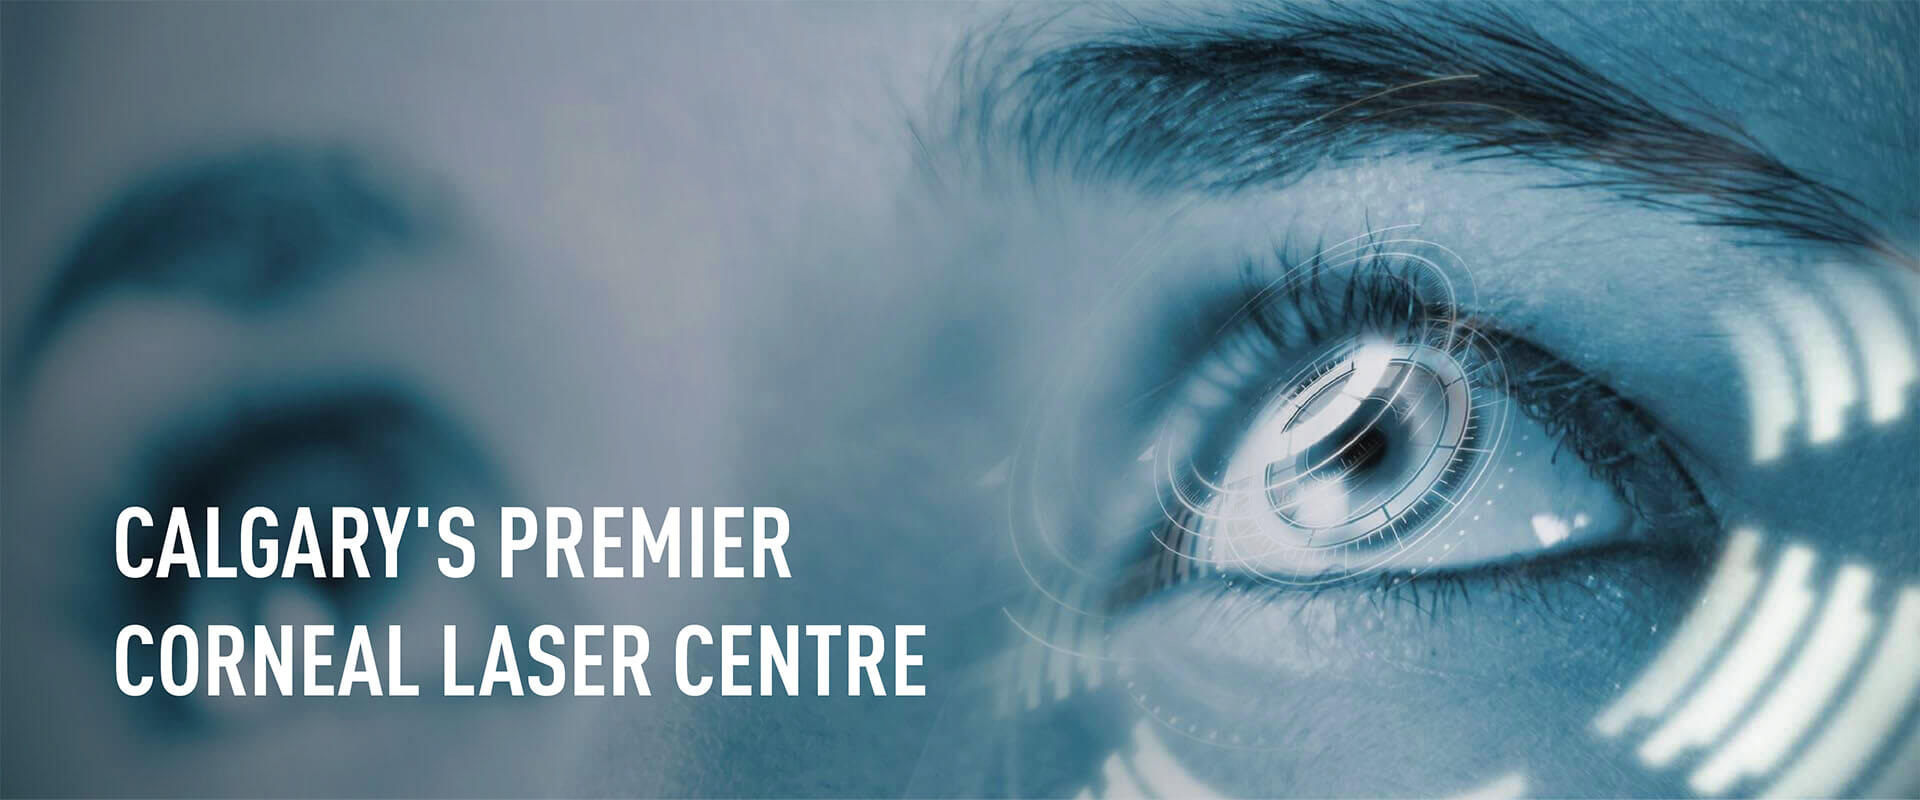 Eye Lasik Banners Orchid Banners